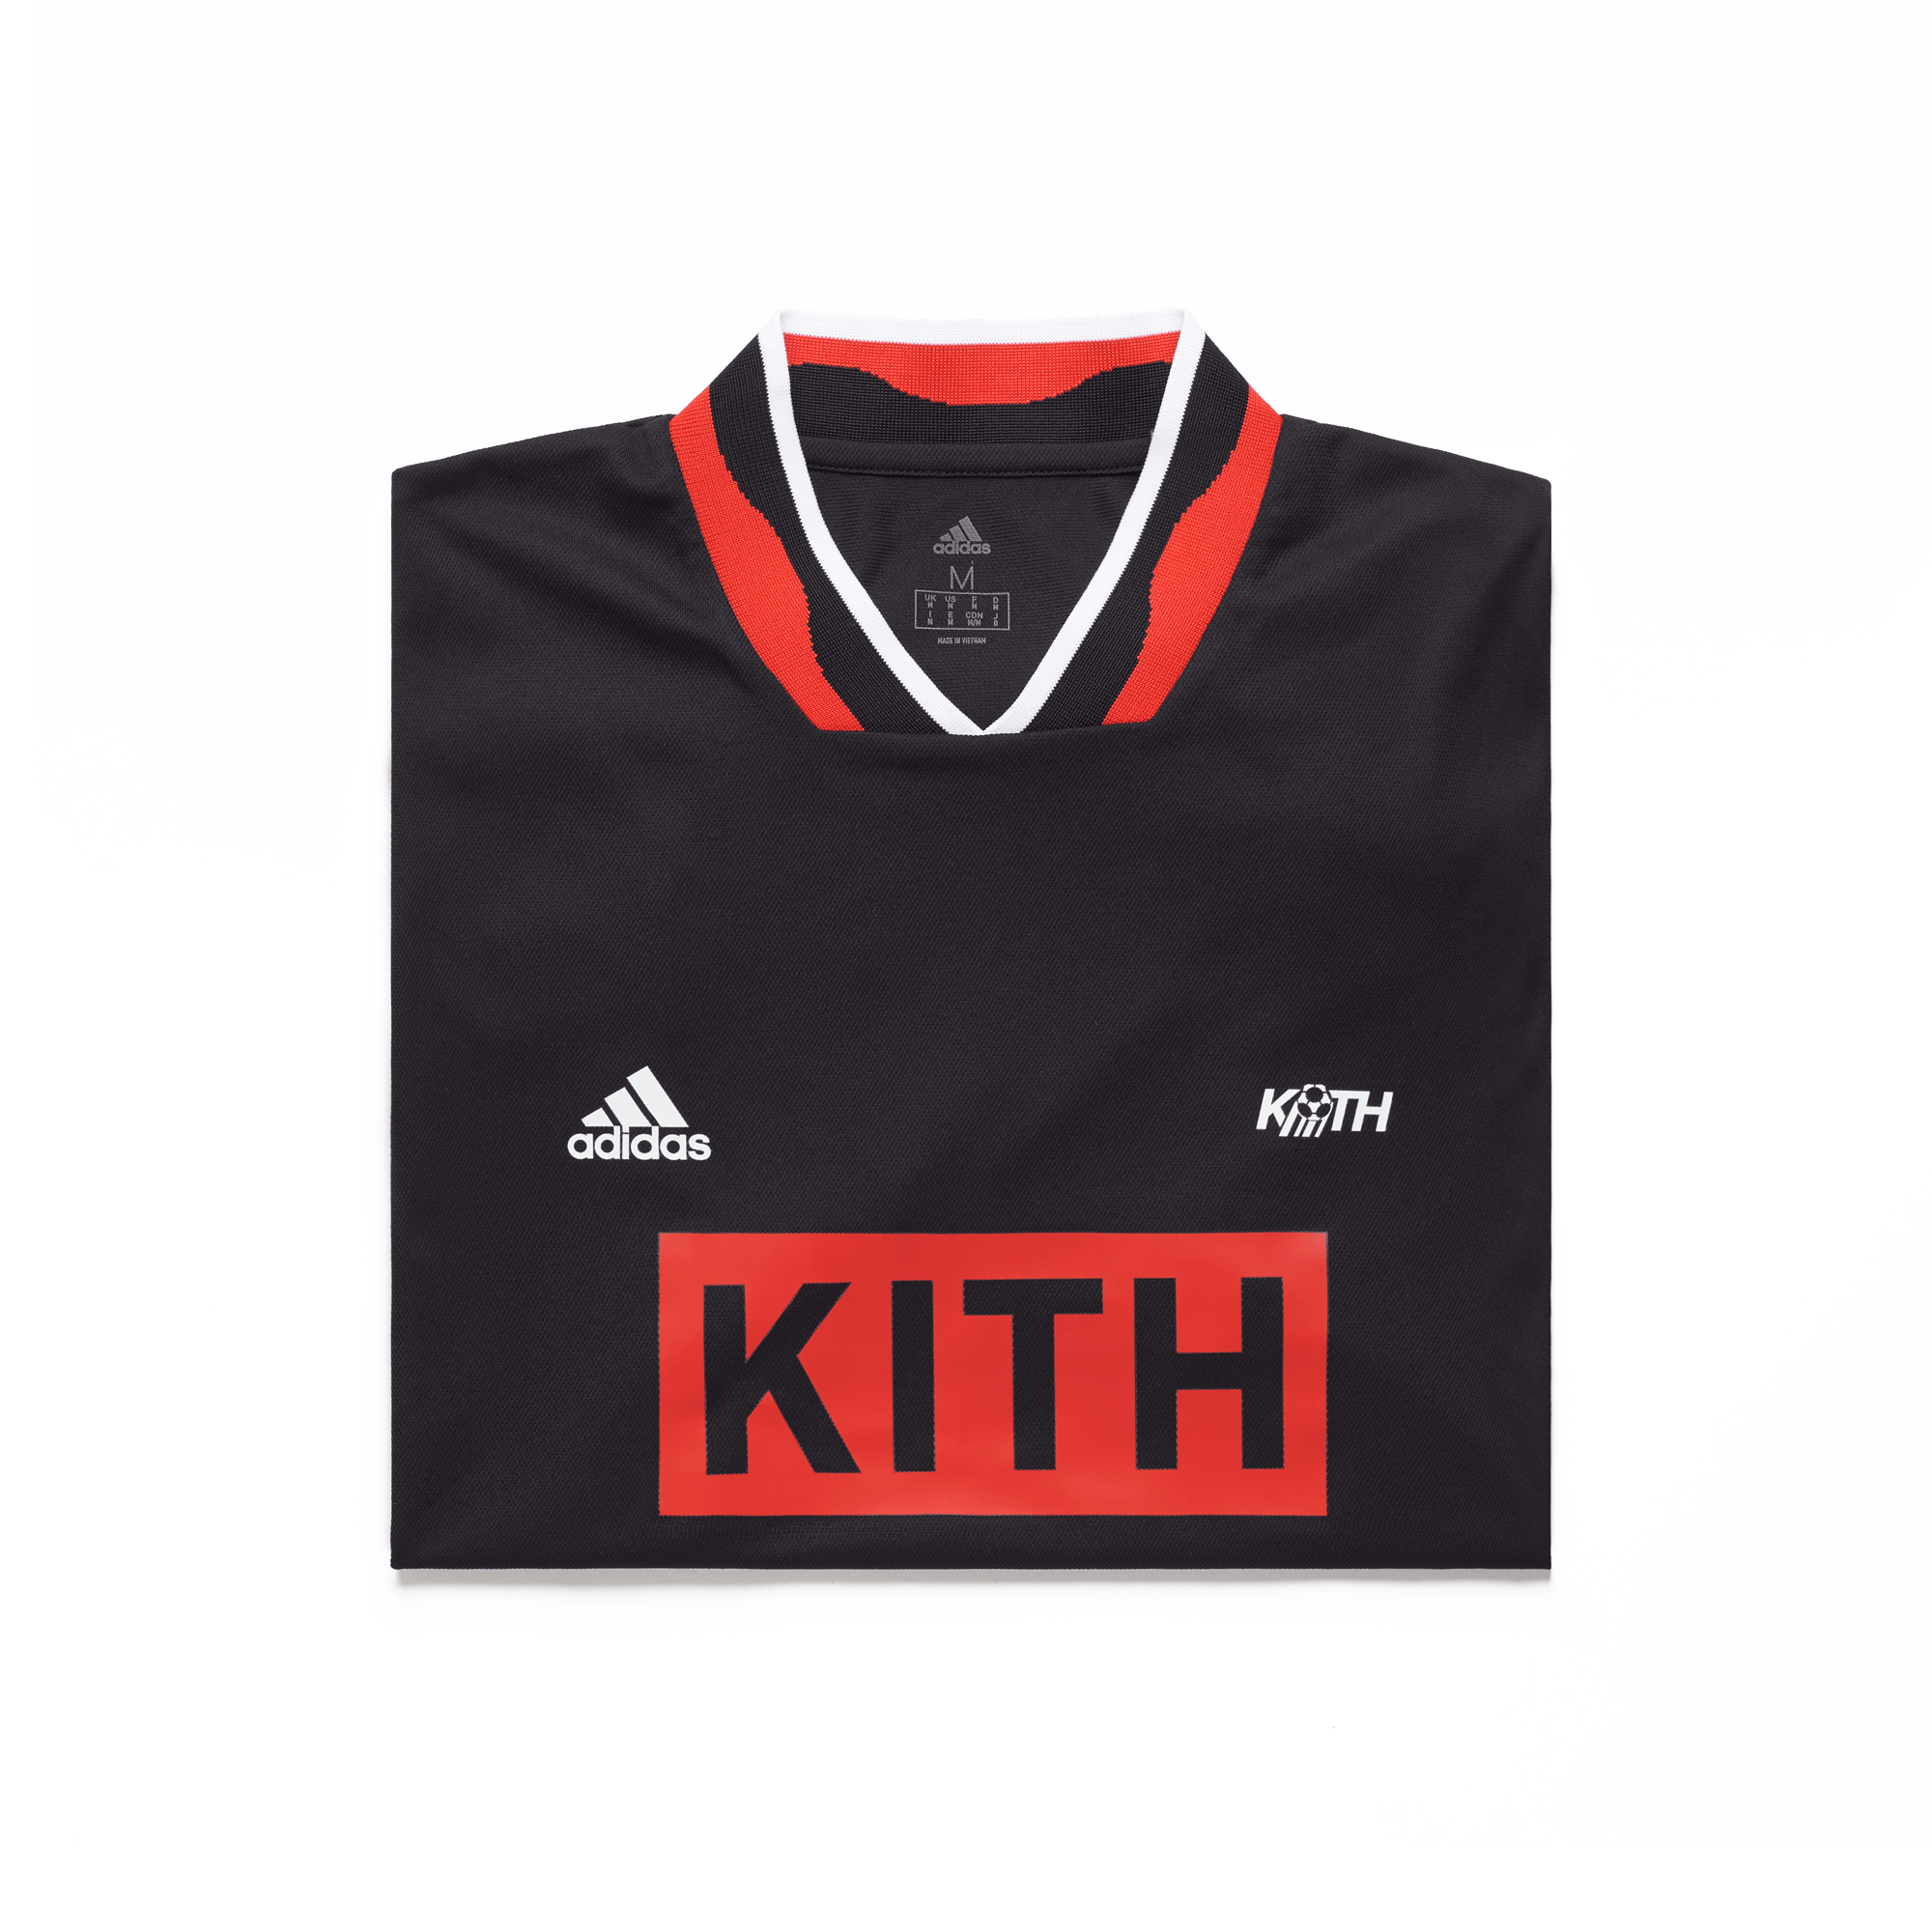 kith_cobra_jersey_2000px.png